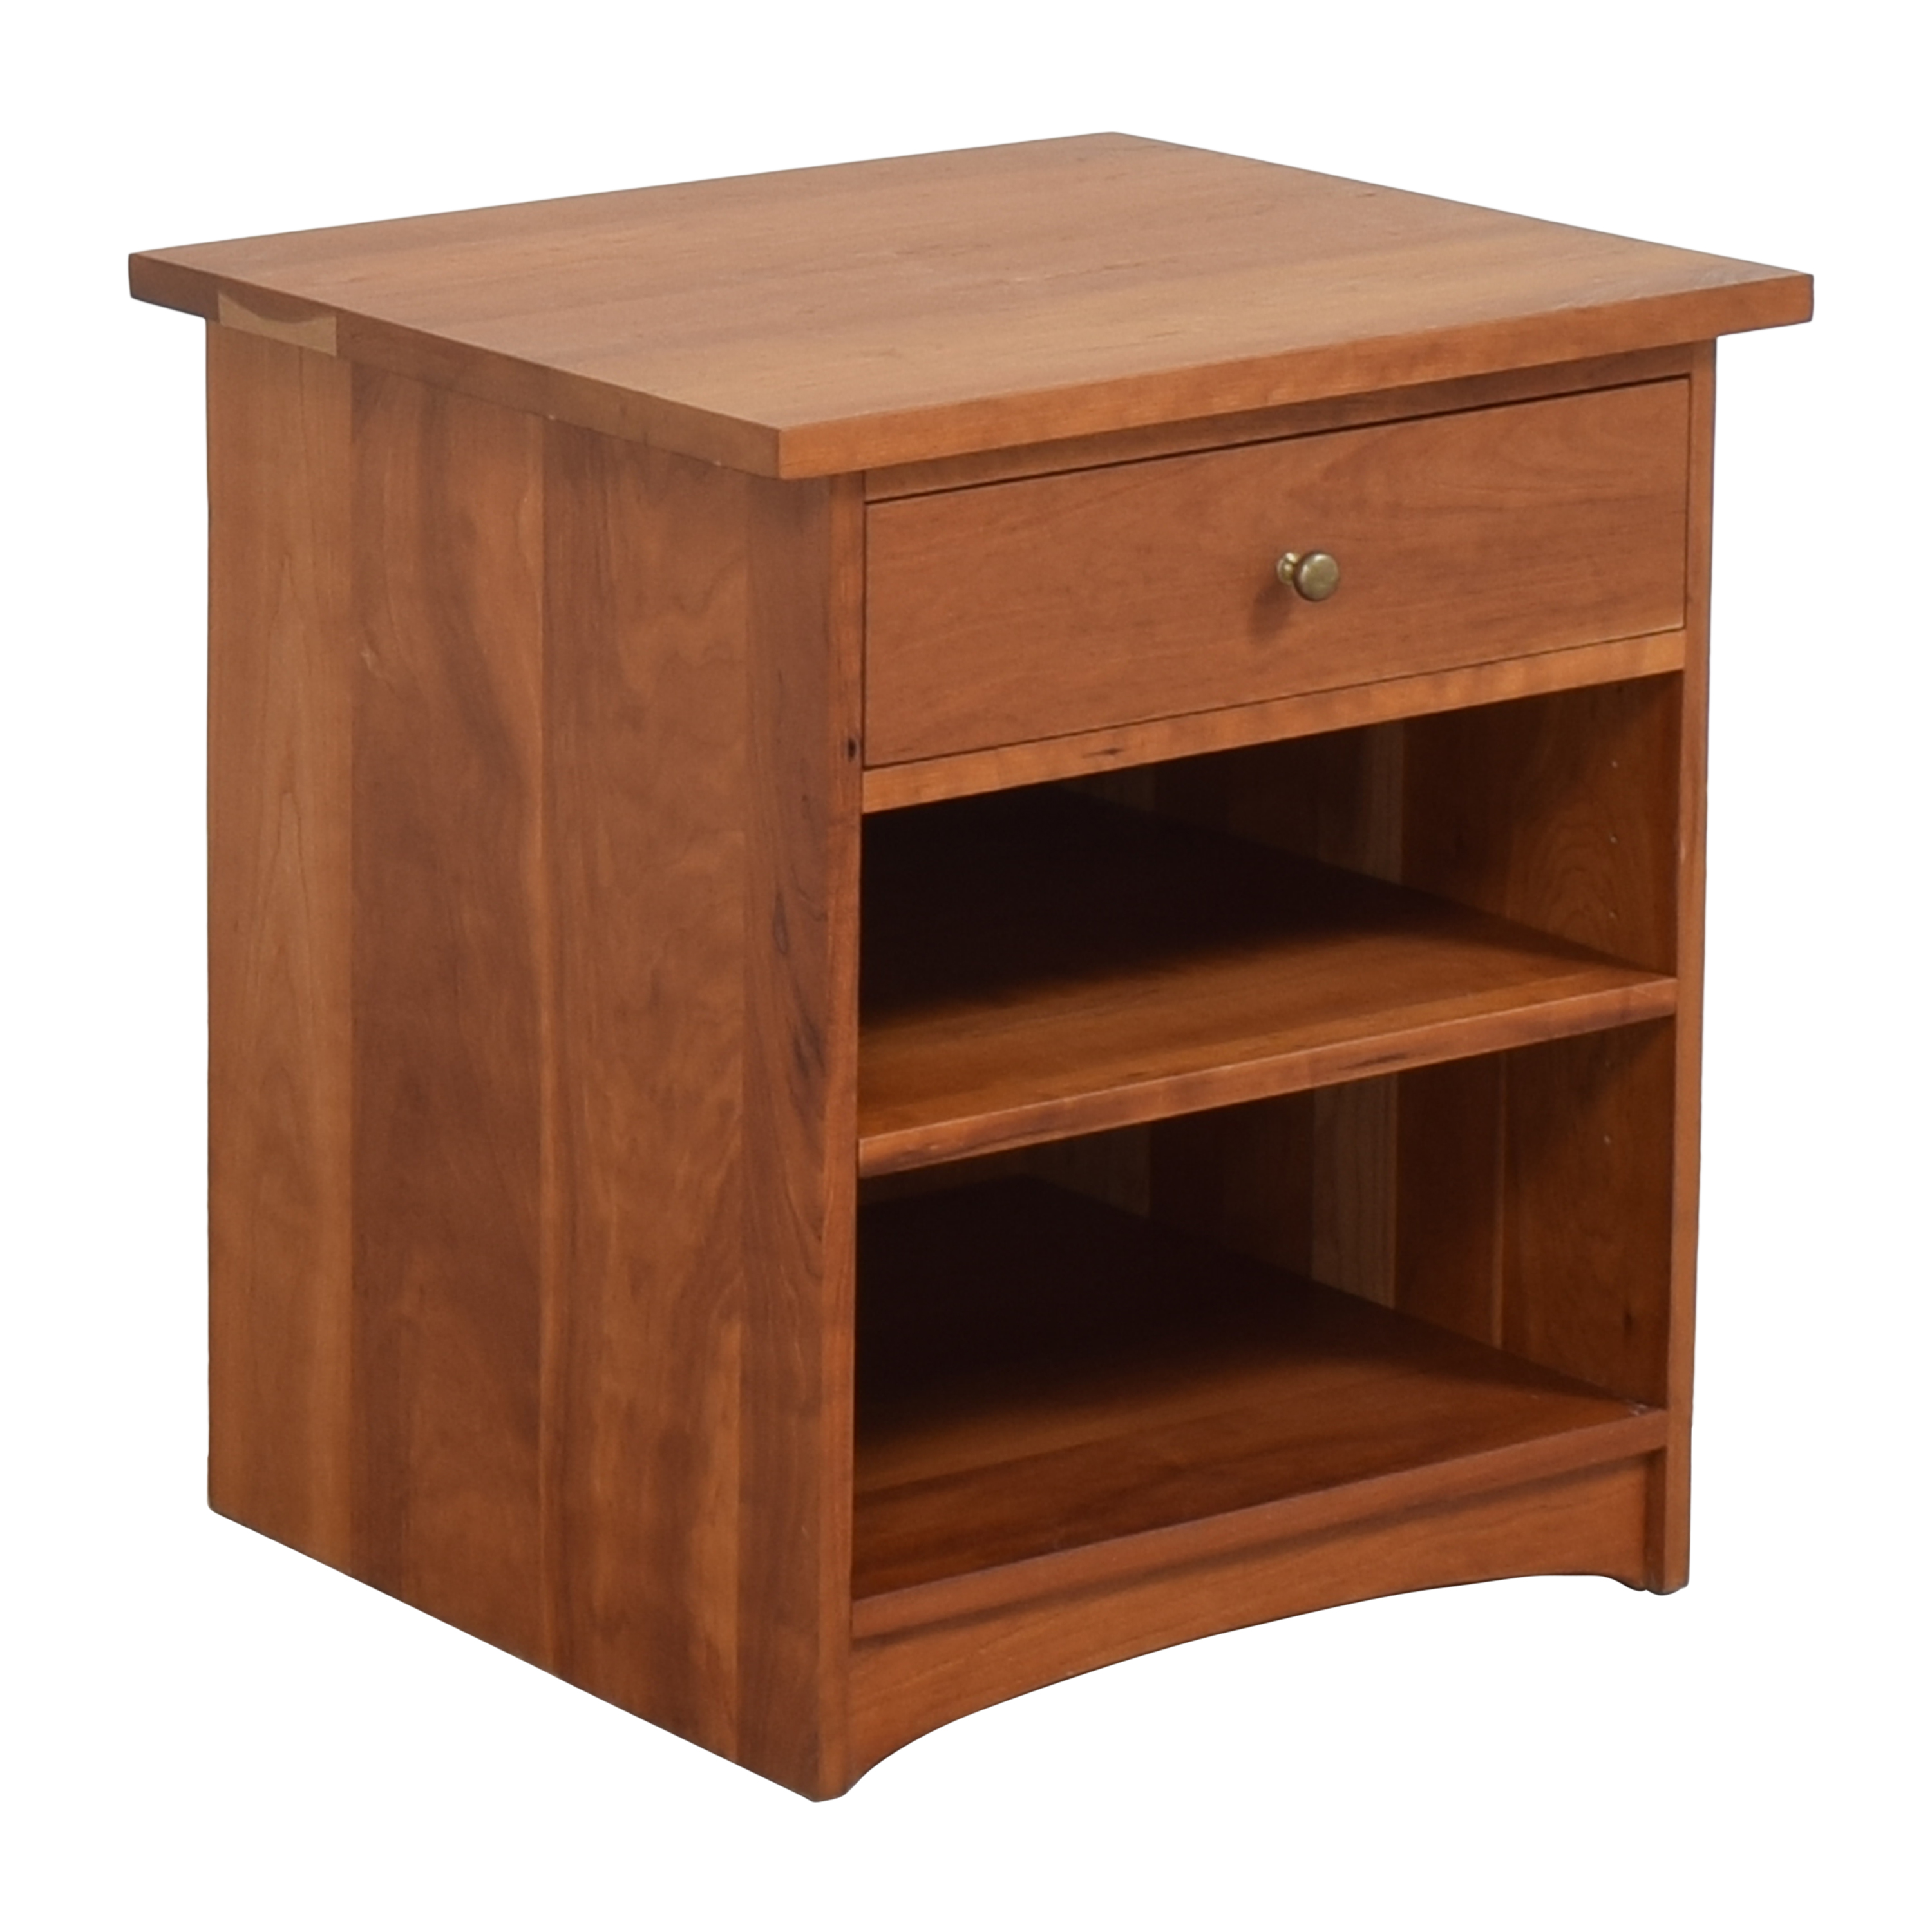 Scott Jordan Furniture Scott Jordan Furniture End Table